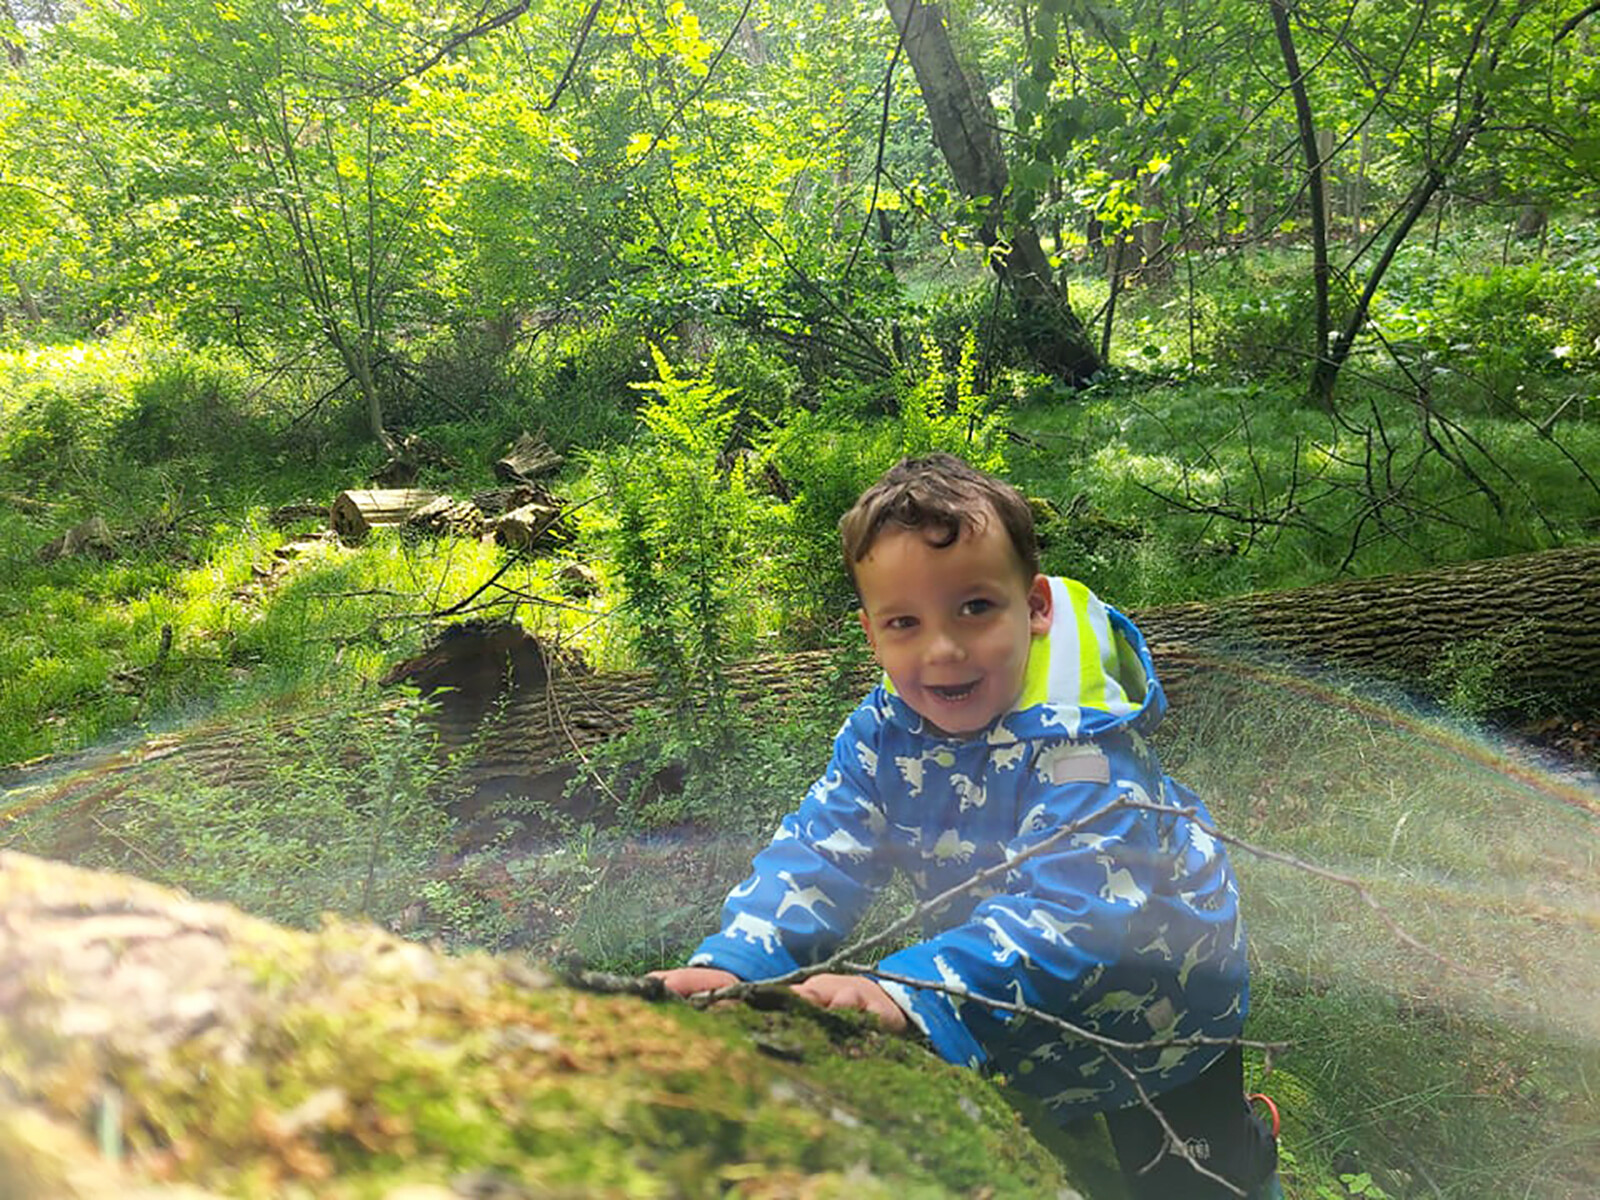 <i>Courtesy Kyle Larson</i><br/>There are many toddlers like Miles who may have been comfortable socializing before the pandemic but are too young remember those days clearly. As many people have come out of pandemic isolation